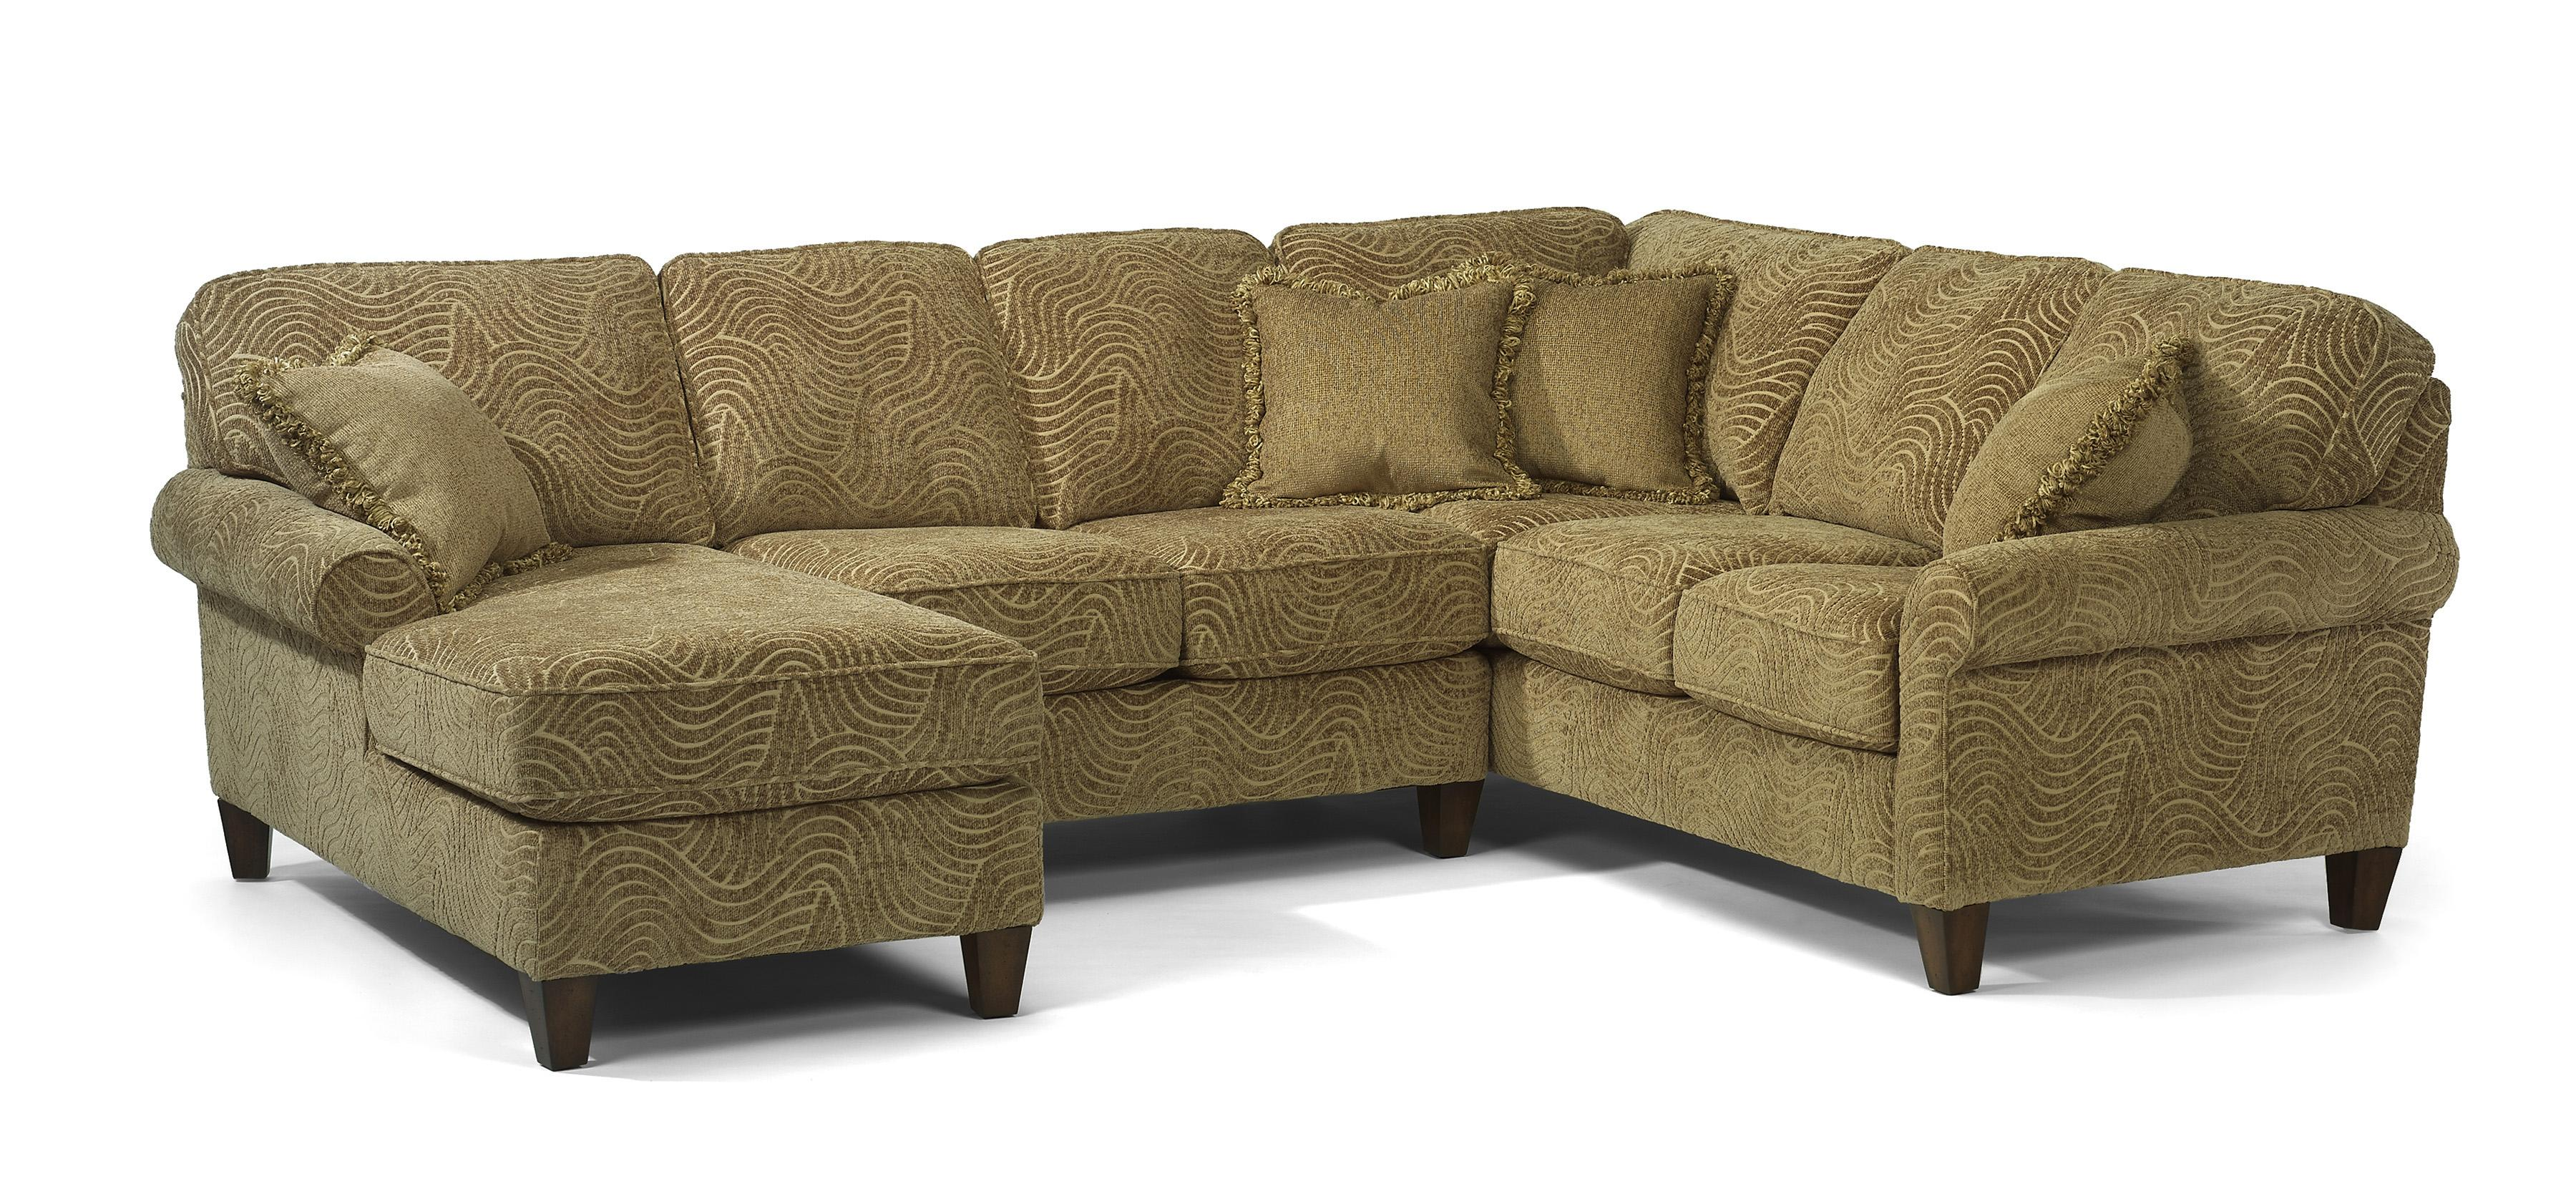 Delightful Westside Casual Corner Sectional Fabric Upholstered Sofa By Flexsteel